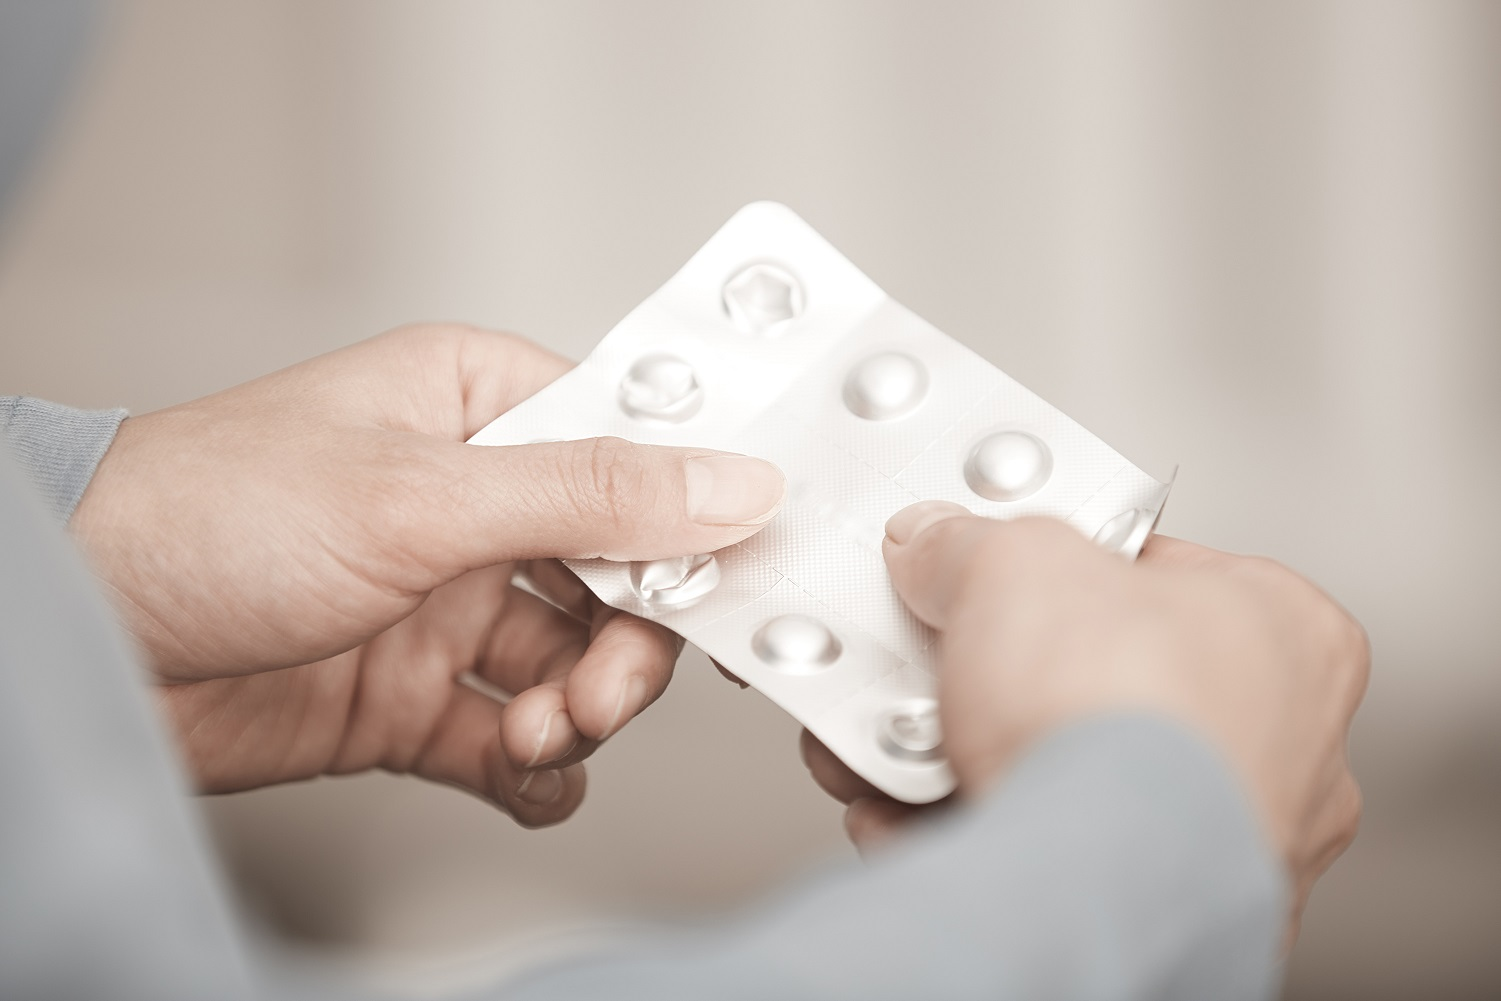 Opioid Abuse and Pregnancy | The Pulse